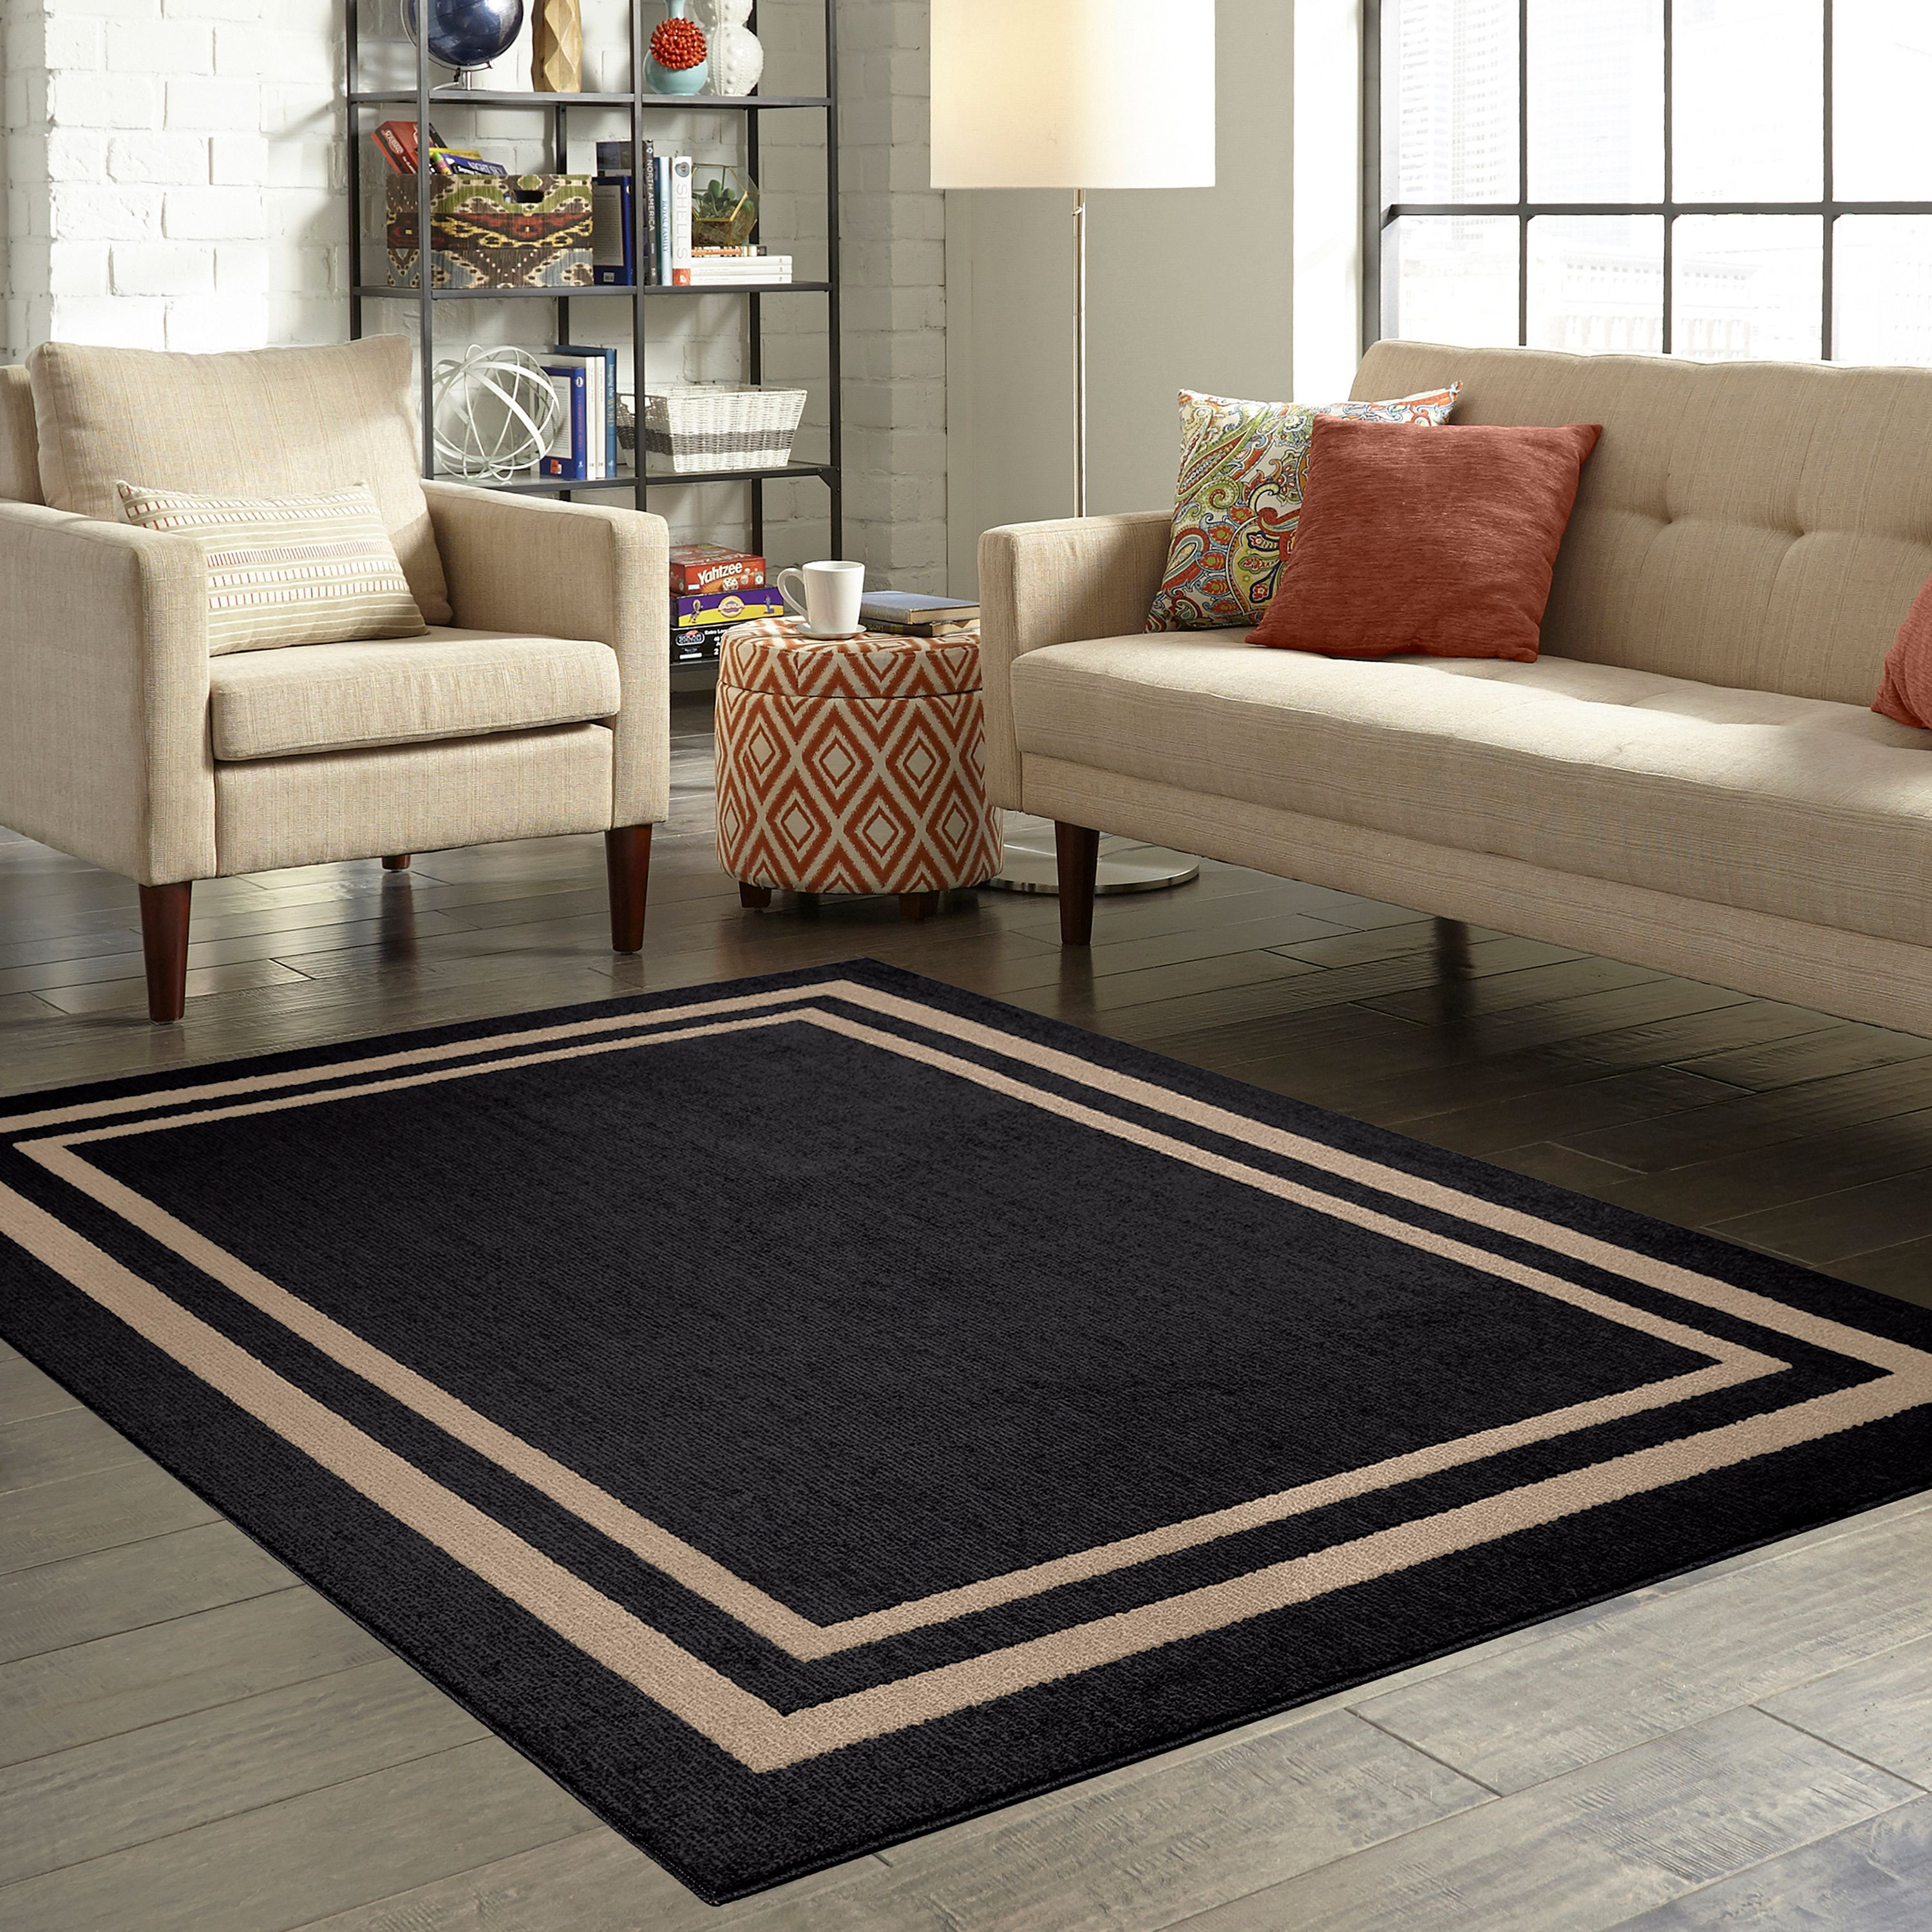 Mainstays Frame Border Area Rugs or Runner